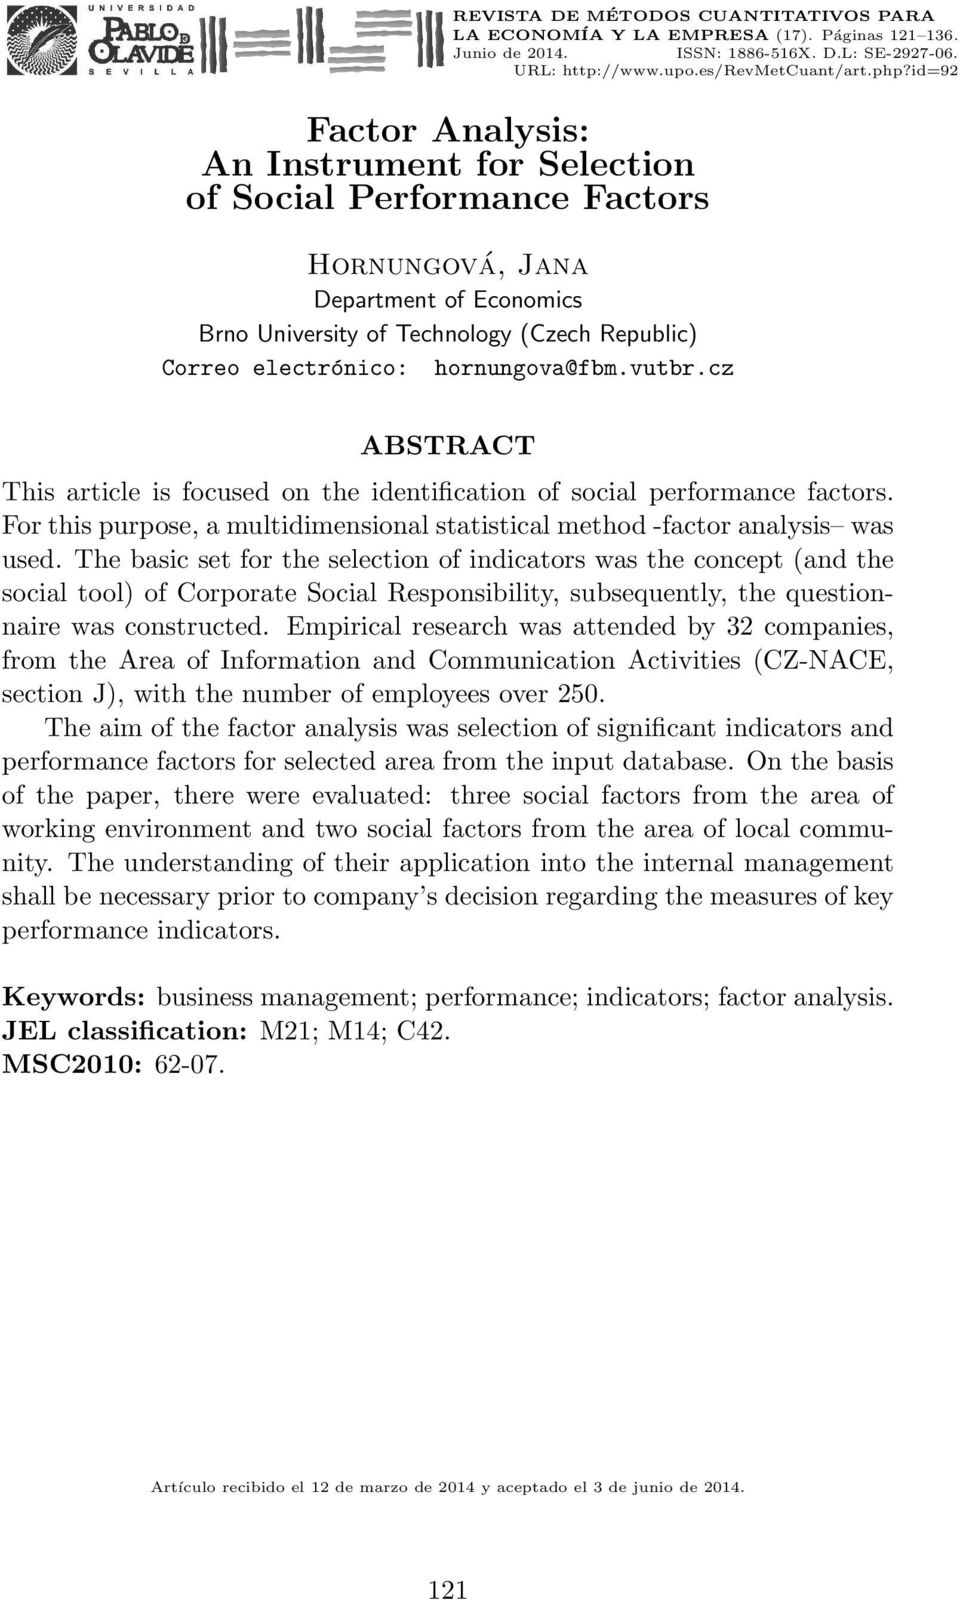 hornungova@fbm.vutbr.cz ABSTRACT This article is focused on the identification of social performance factors. For this purpose, a multidimensional statistical method -factor analysis was used.